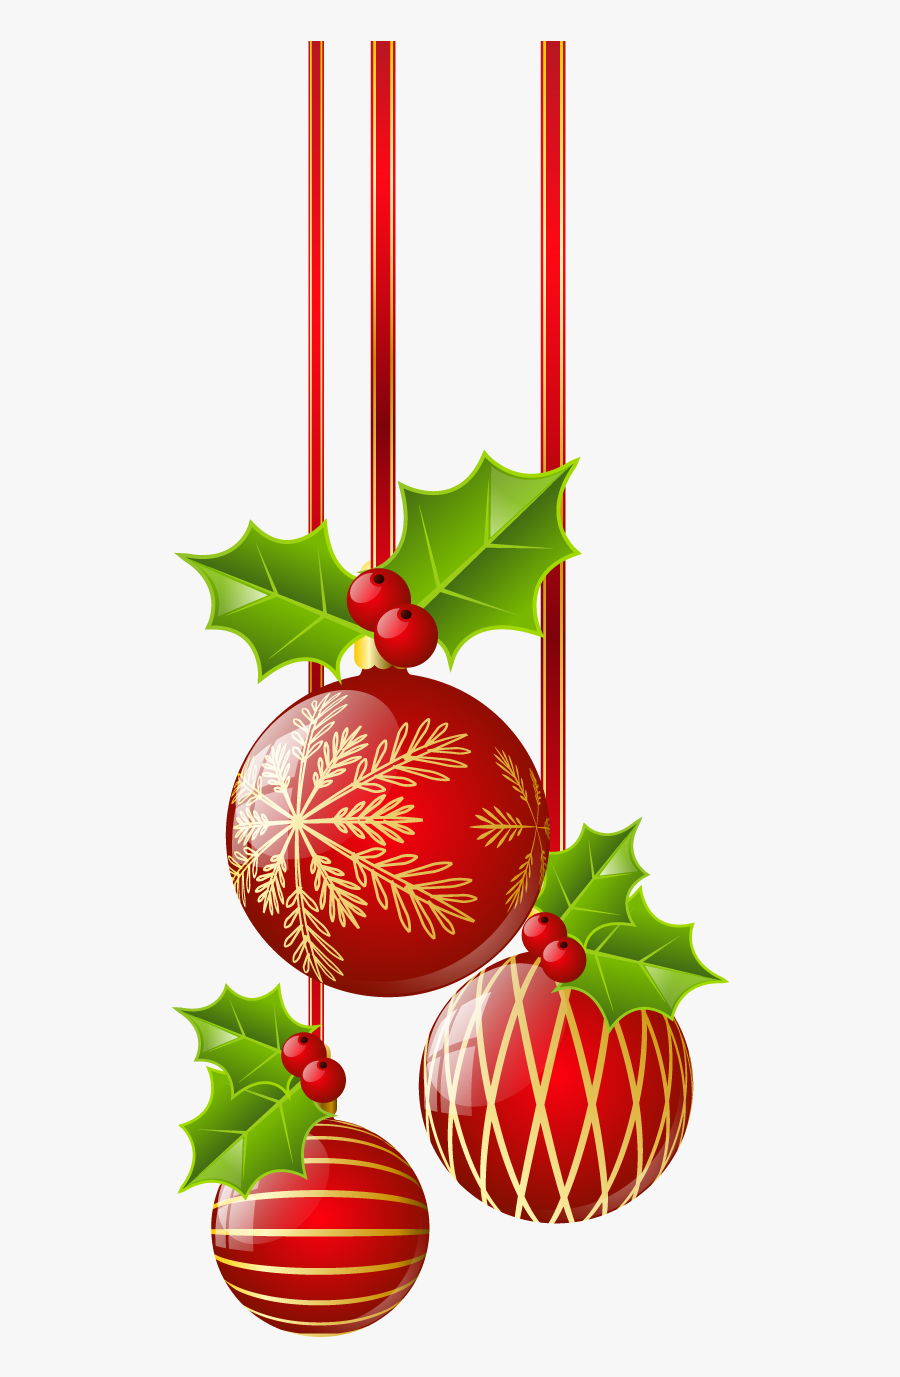 Ornaments ○ Christmas Border, Red Christmas, Red Ornaments, - Free Transparent Christmas Clipart, Transparent Clipart